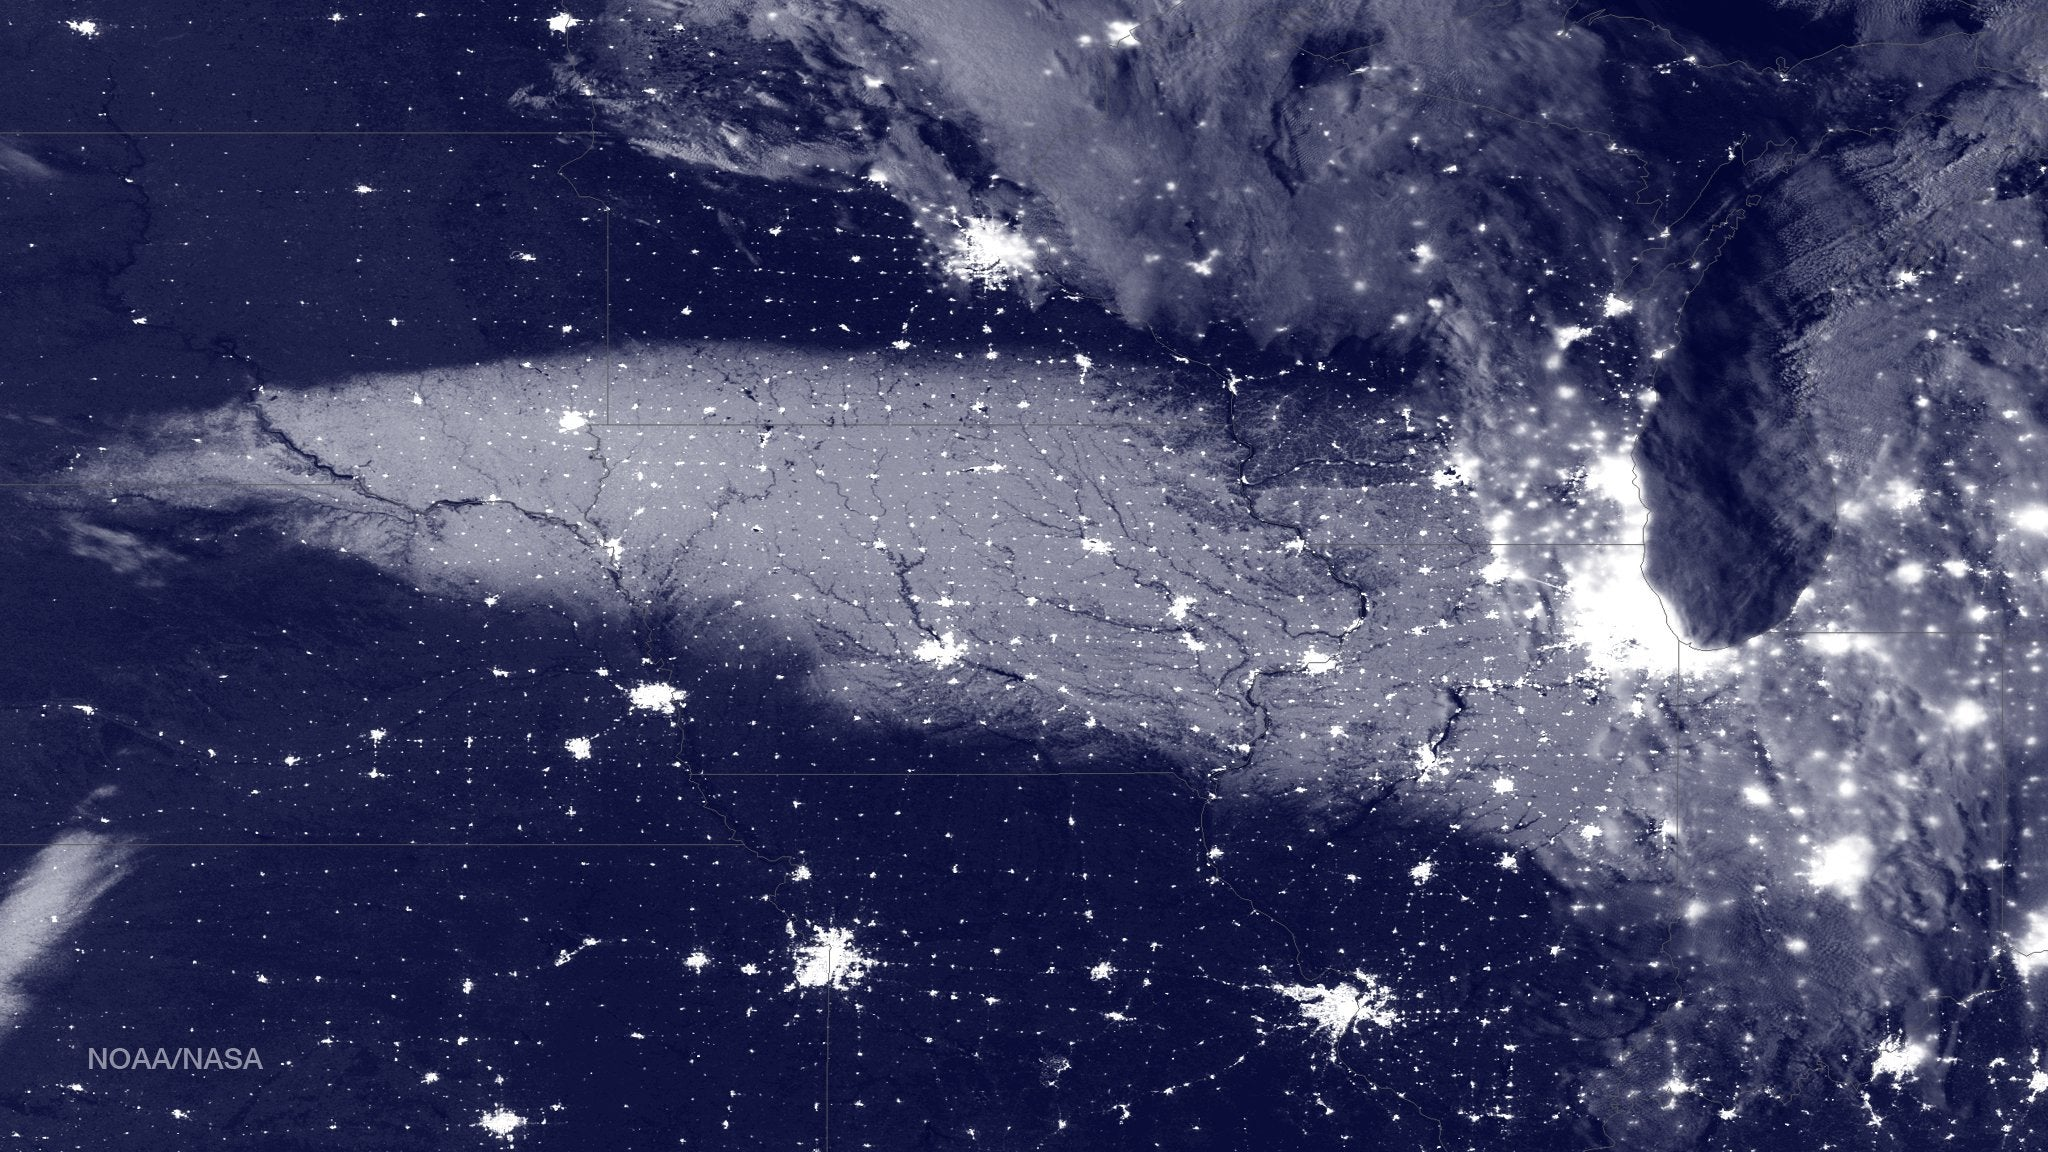 Here's What the Aftermath of a Snowstorm Looks Like To a Satellite